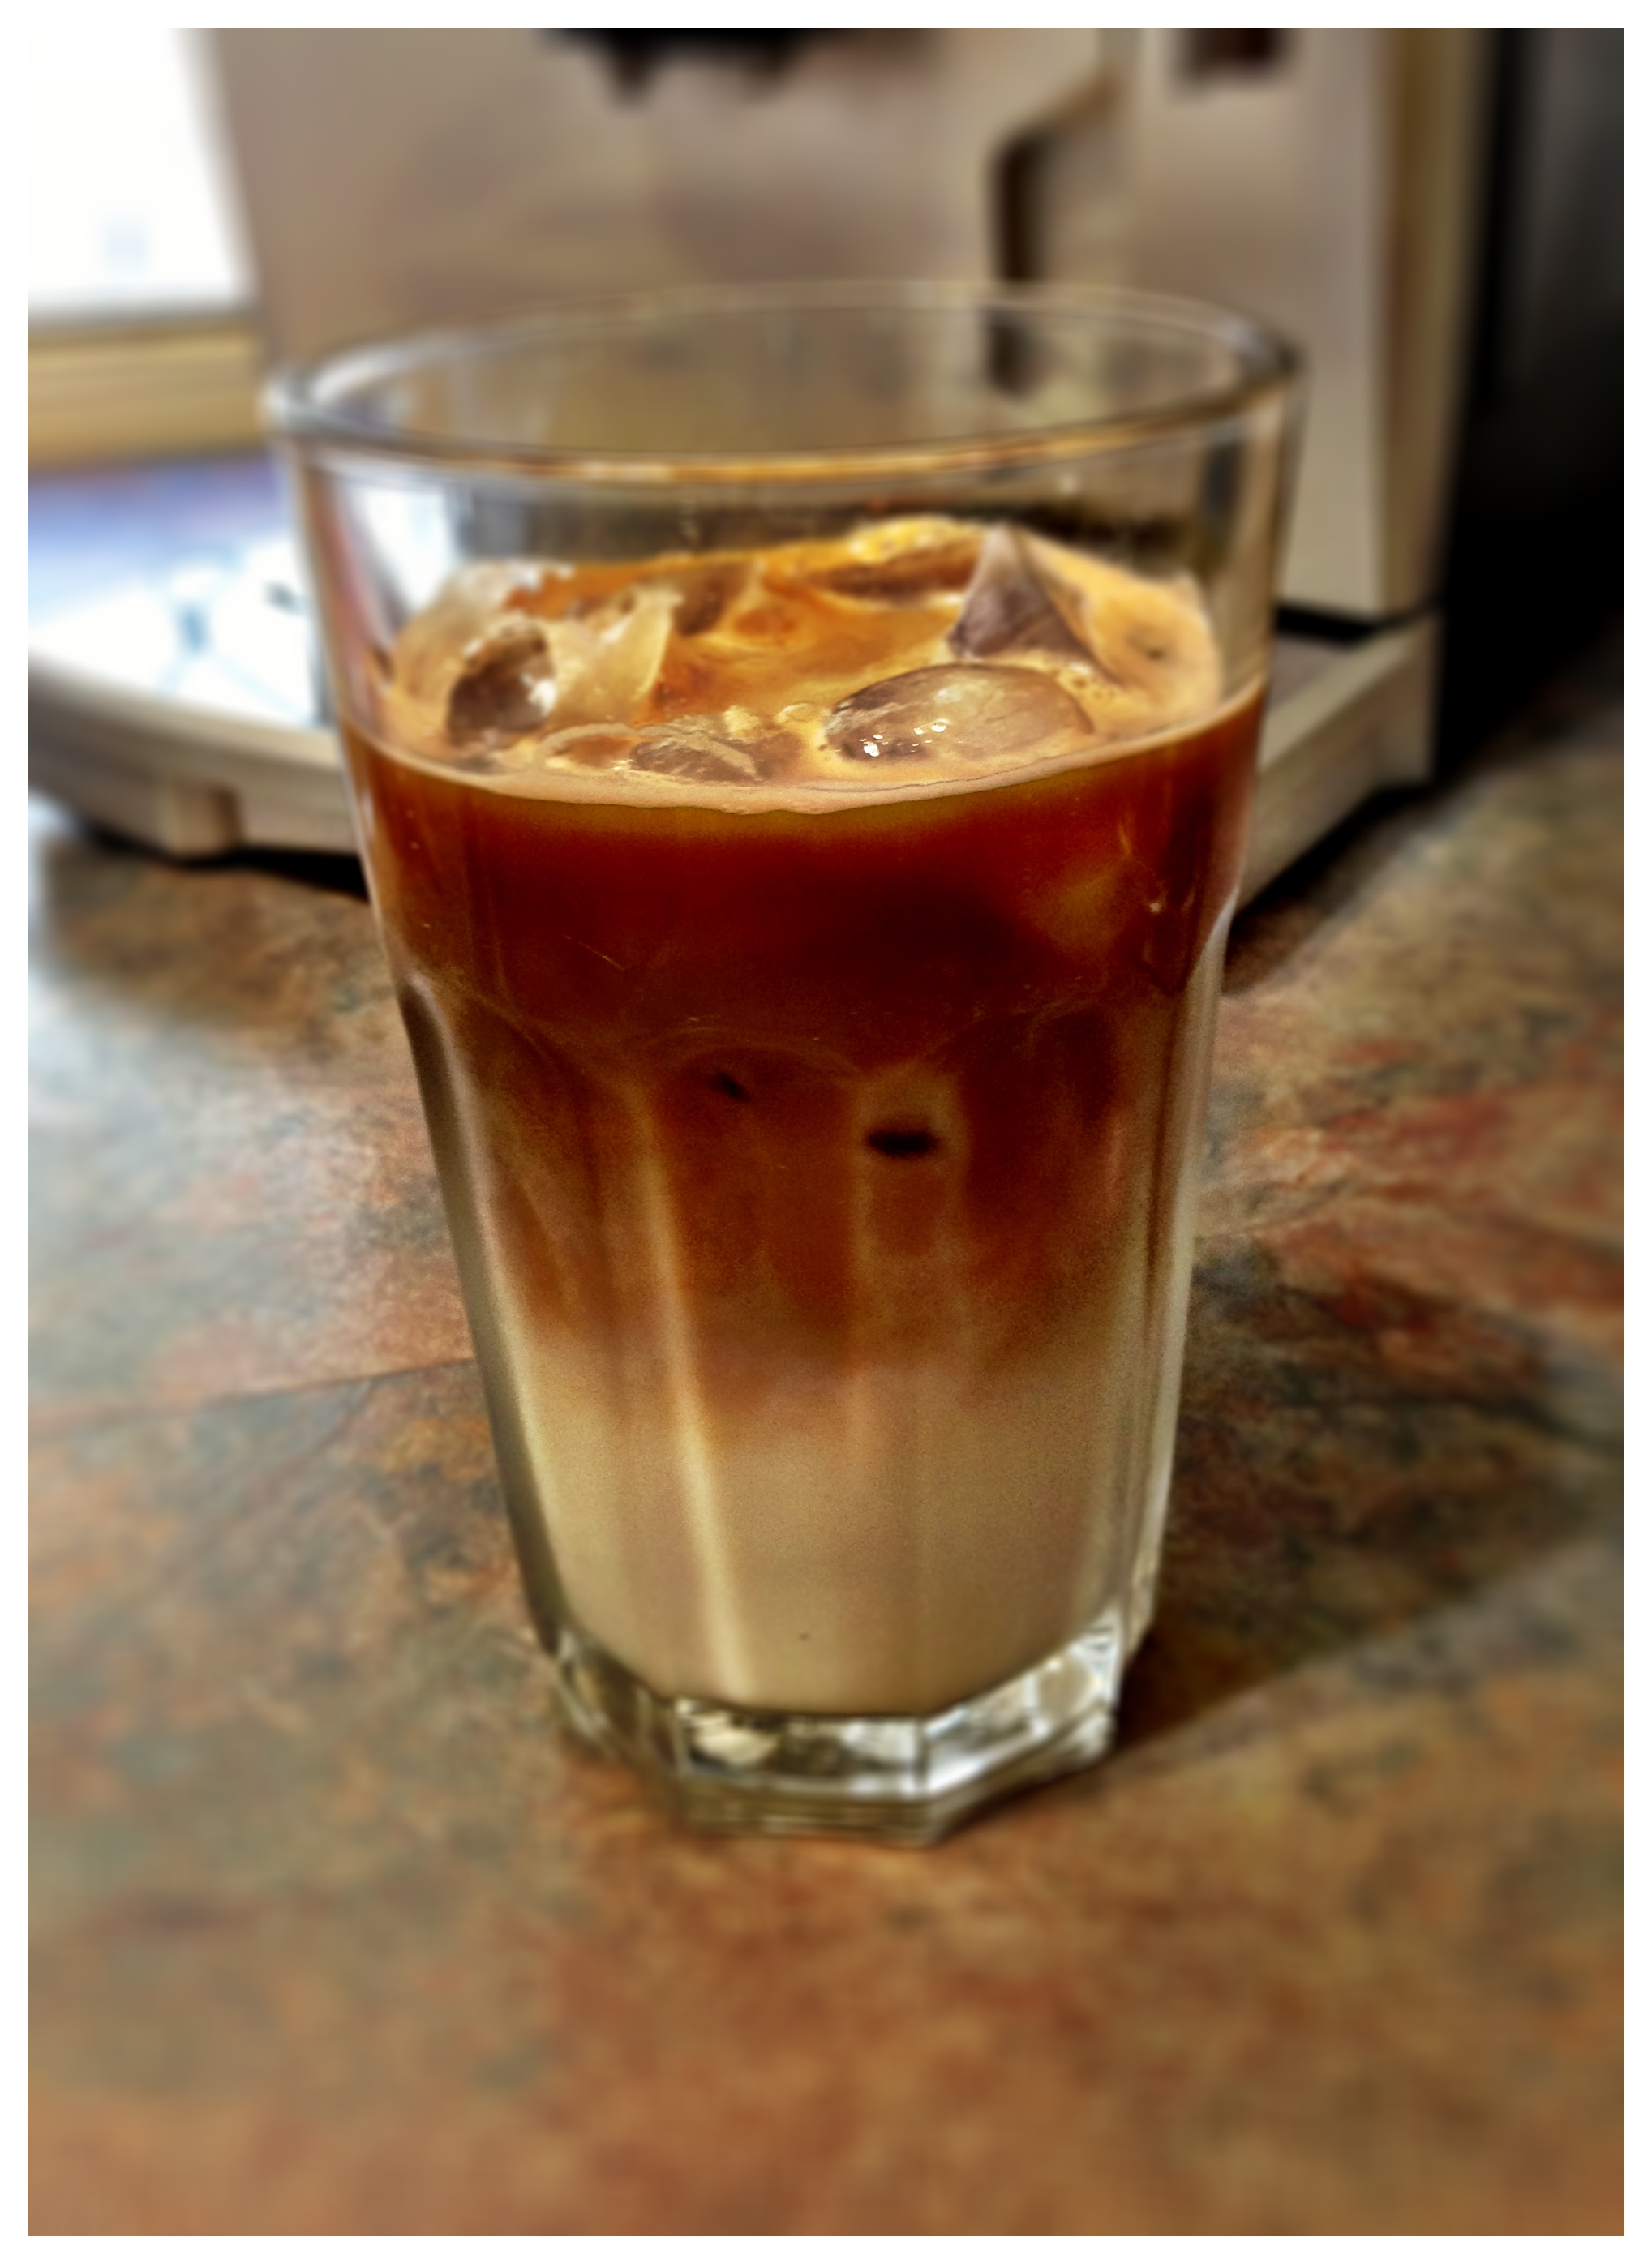 Prepared Iced Latte